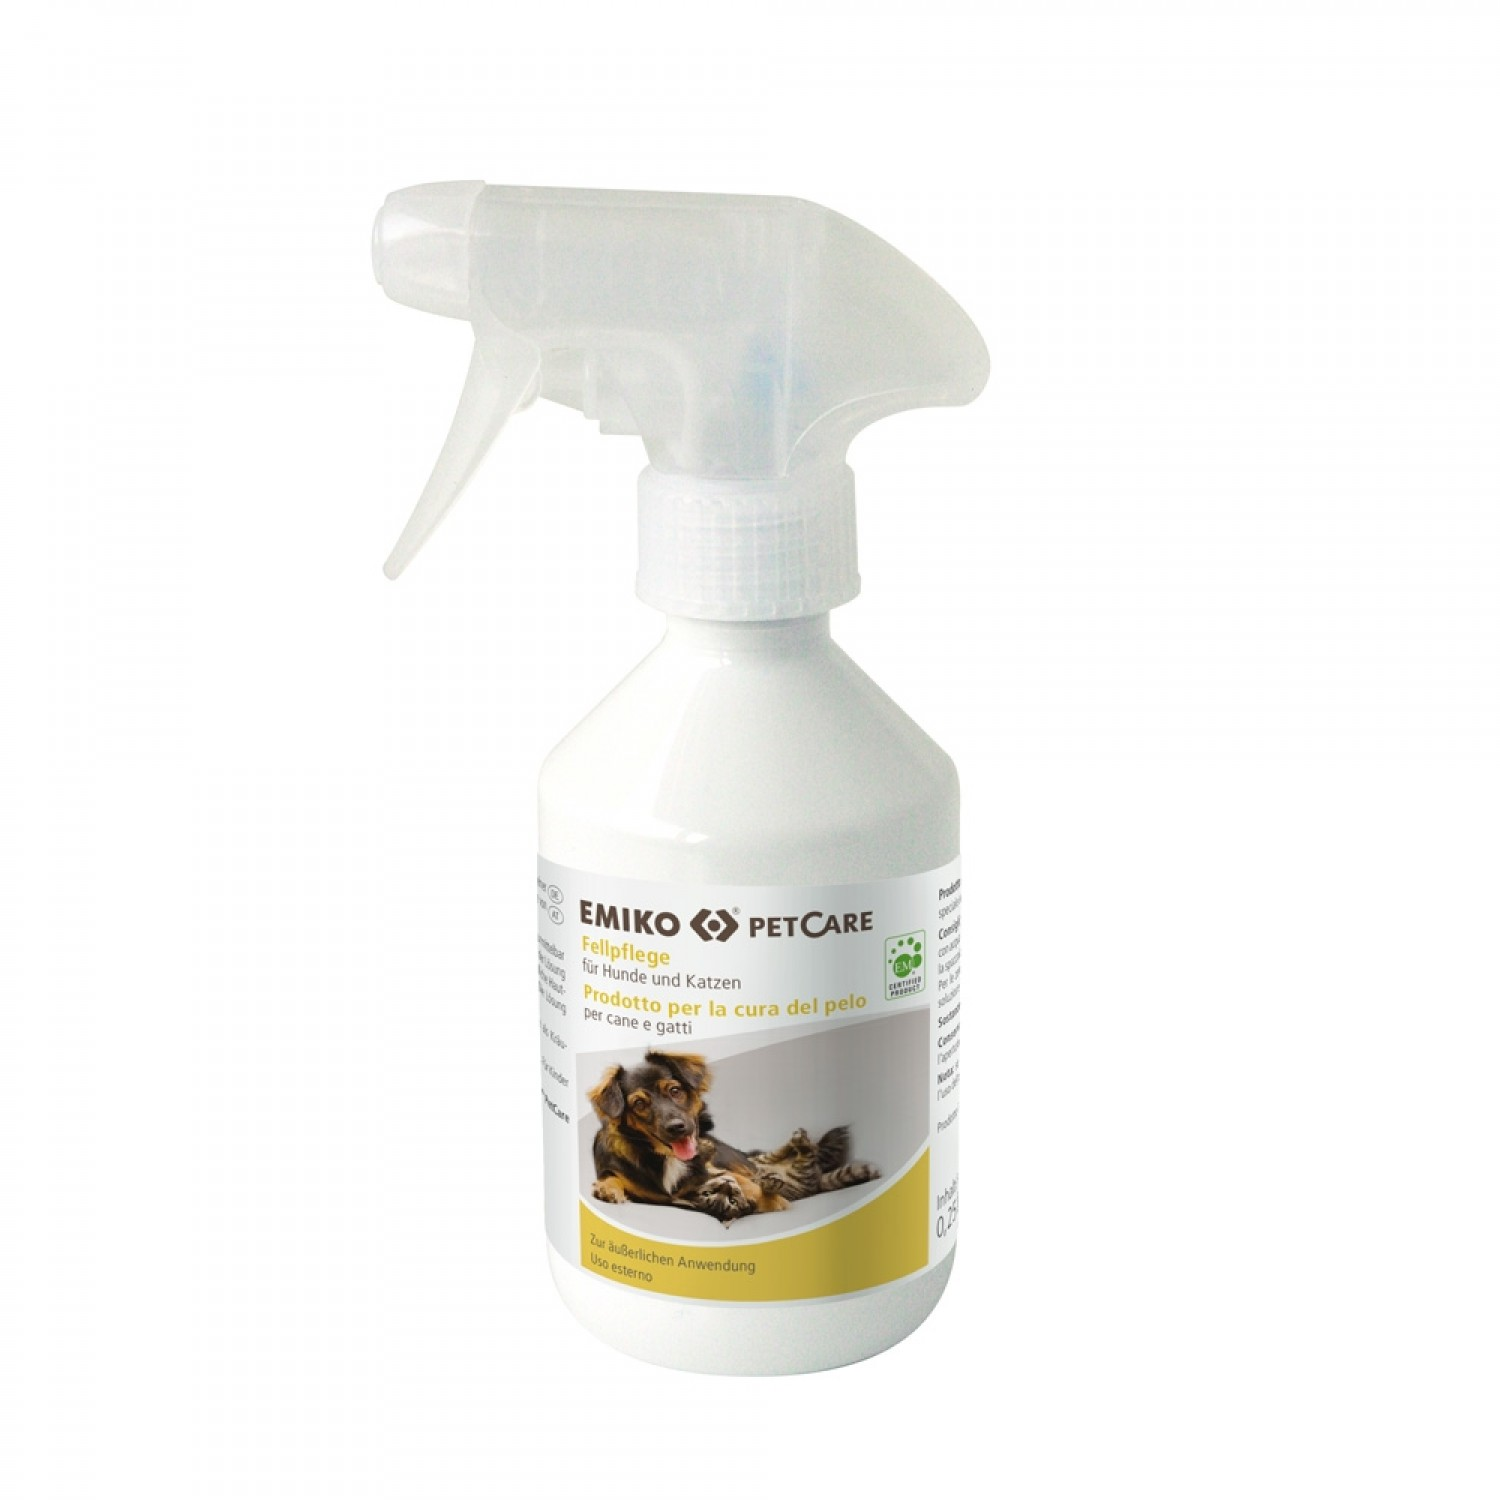 Emiko PetCare Grooming for Dogs & Cats, 250ml